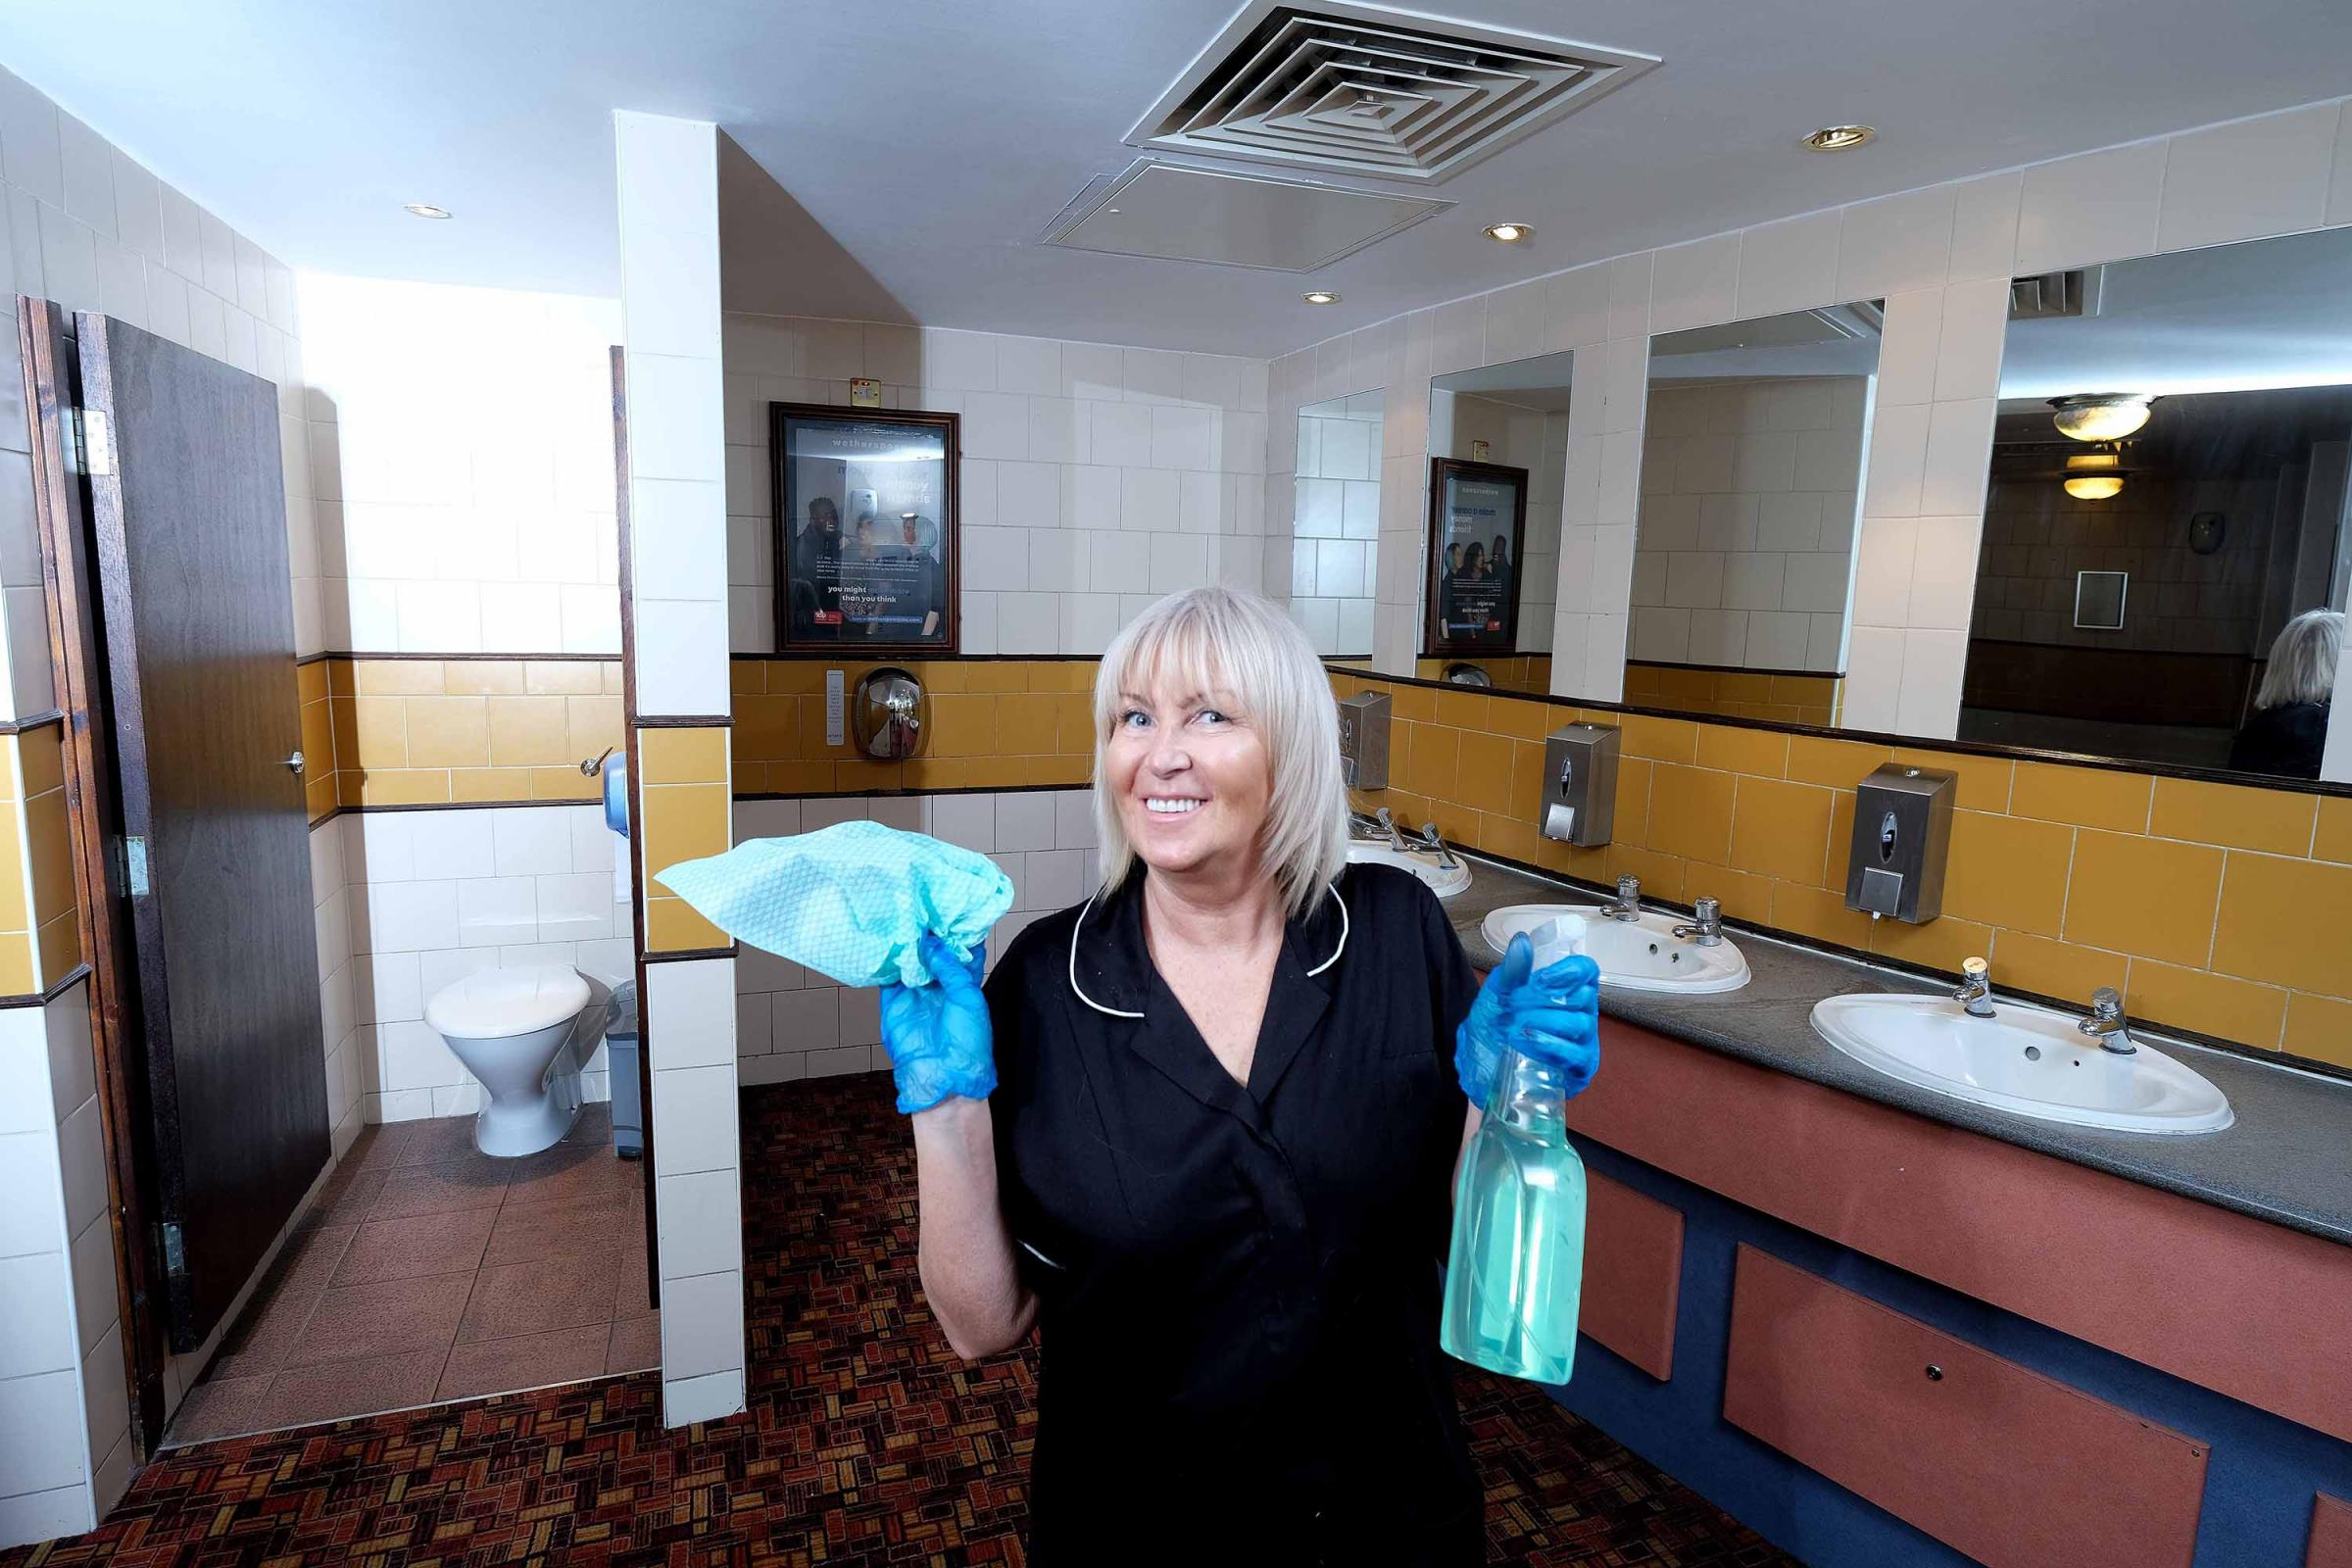 Ayr pub wins toilet award